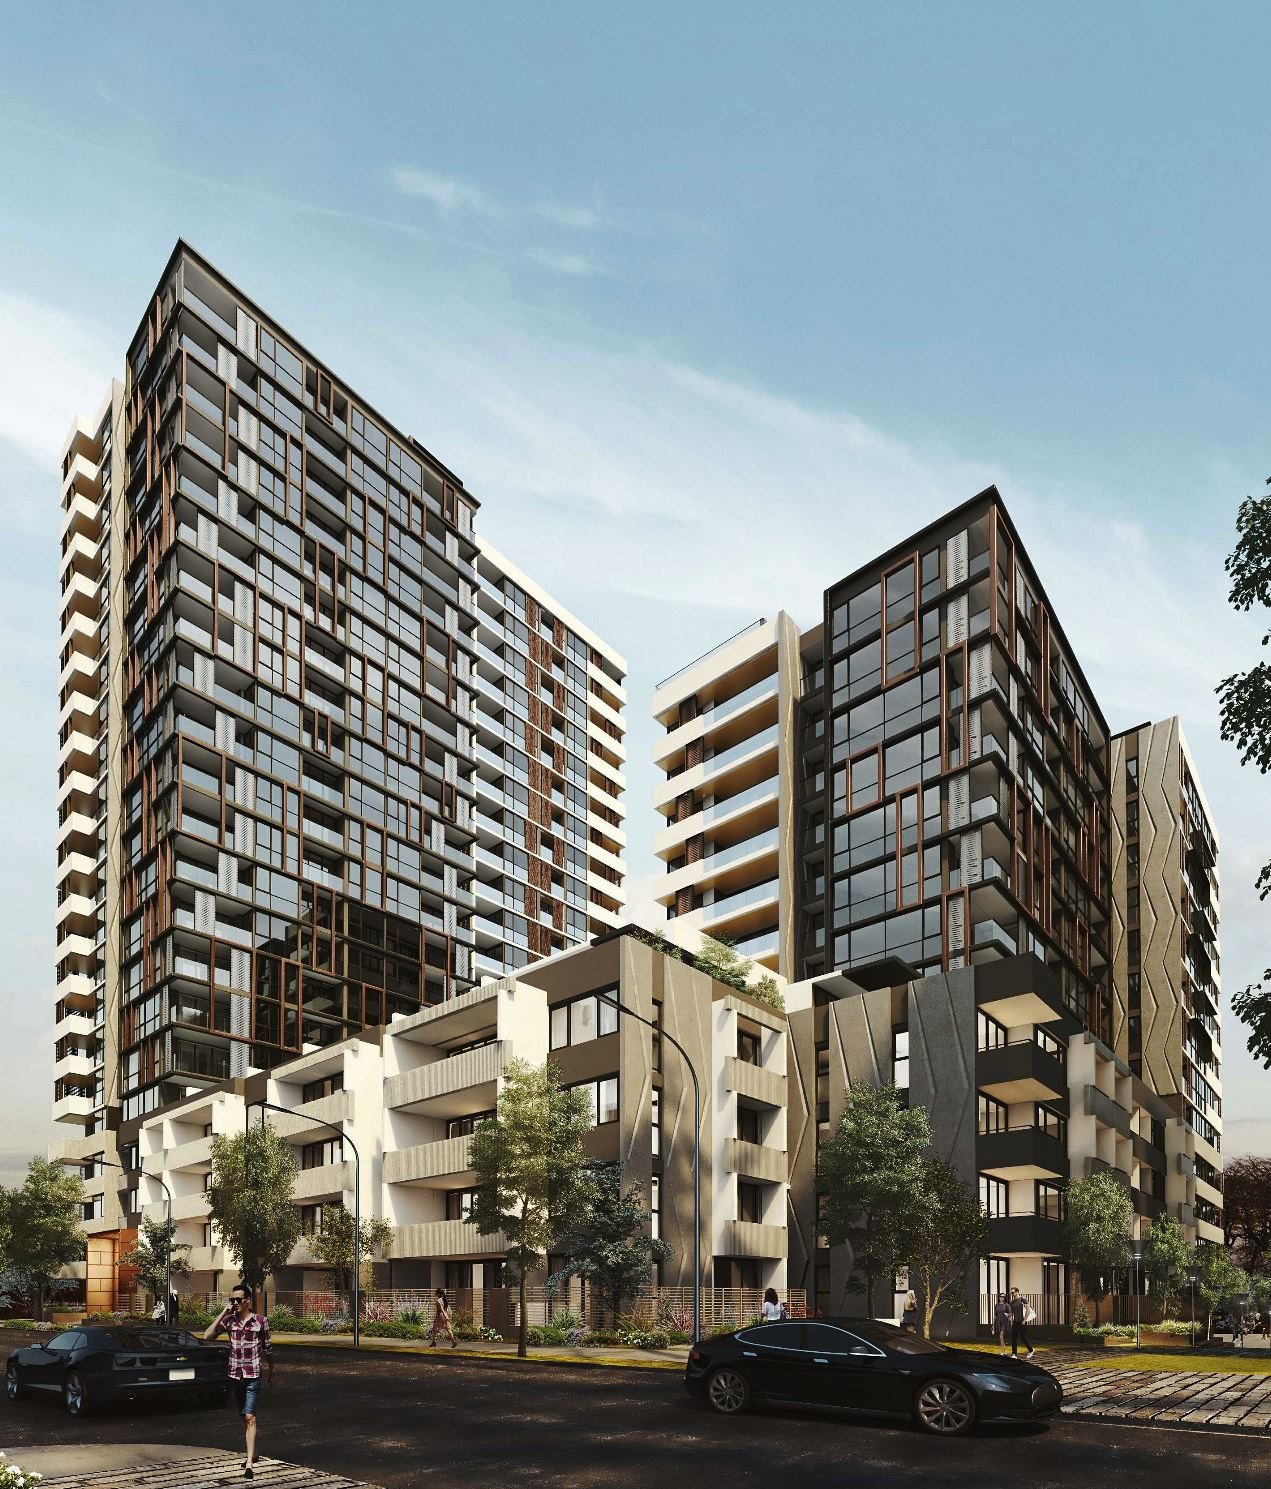 There are landscaped common areas provided on the ground and third floor levels of the development.